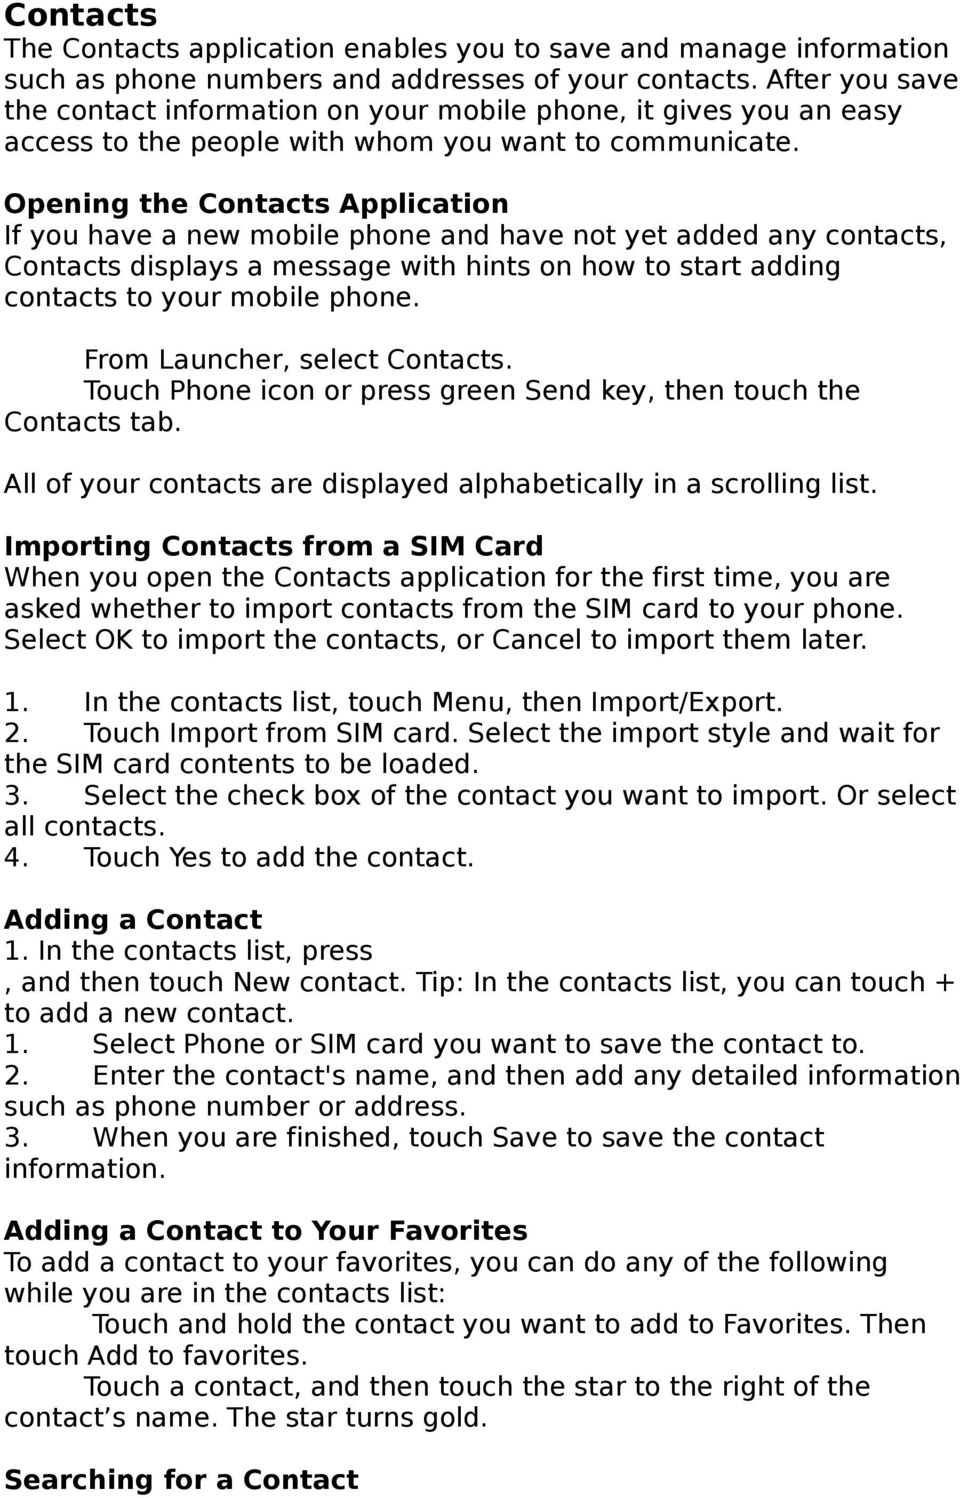 Opening the Contacts Application If you have a new mobile phone and have not yet added any contacts, Contacts displays a message with hints on how to start adding contacts to your mobile phone.